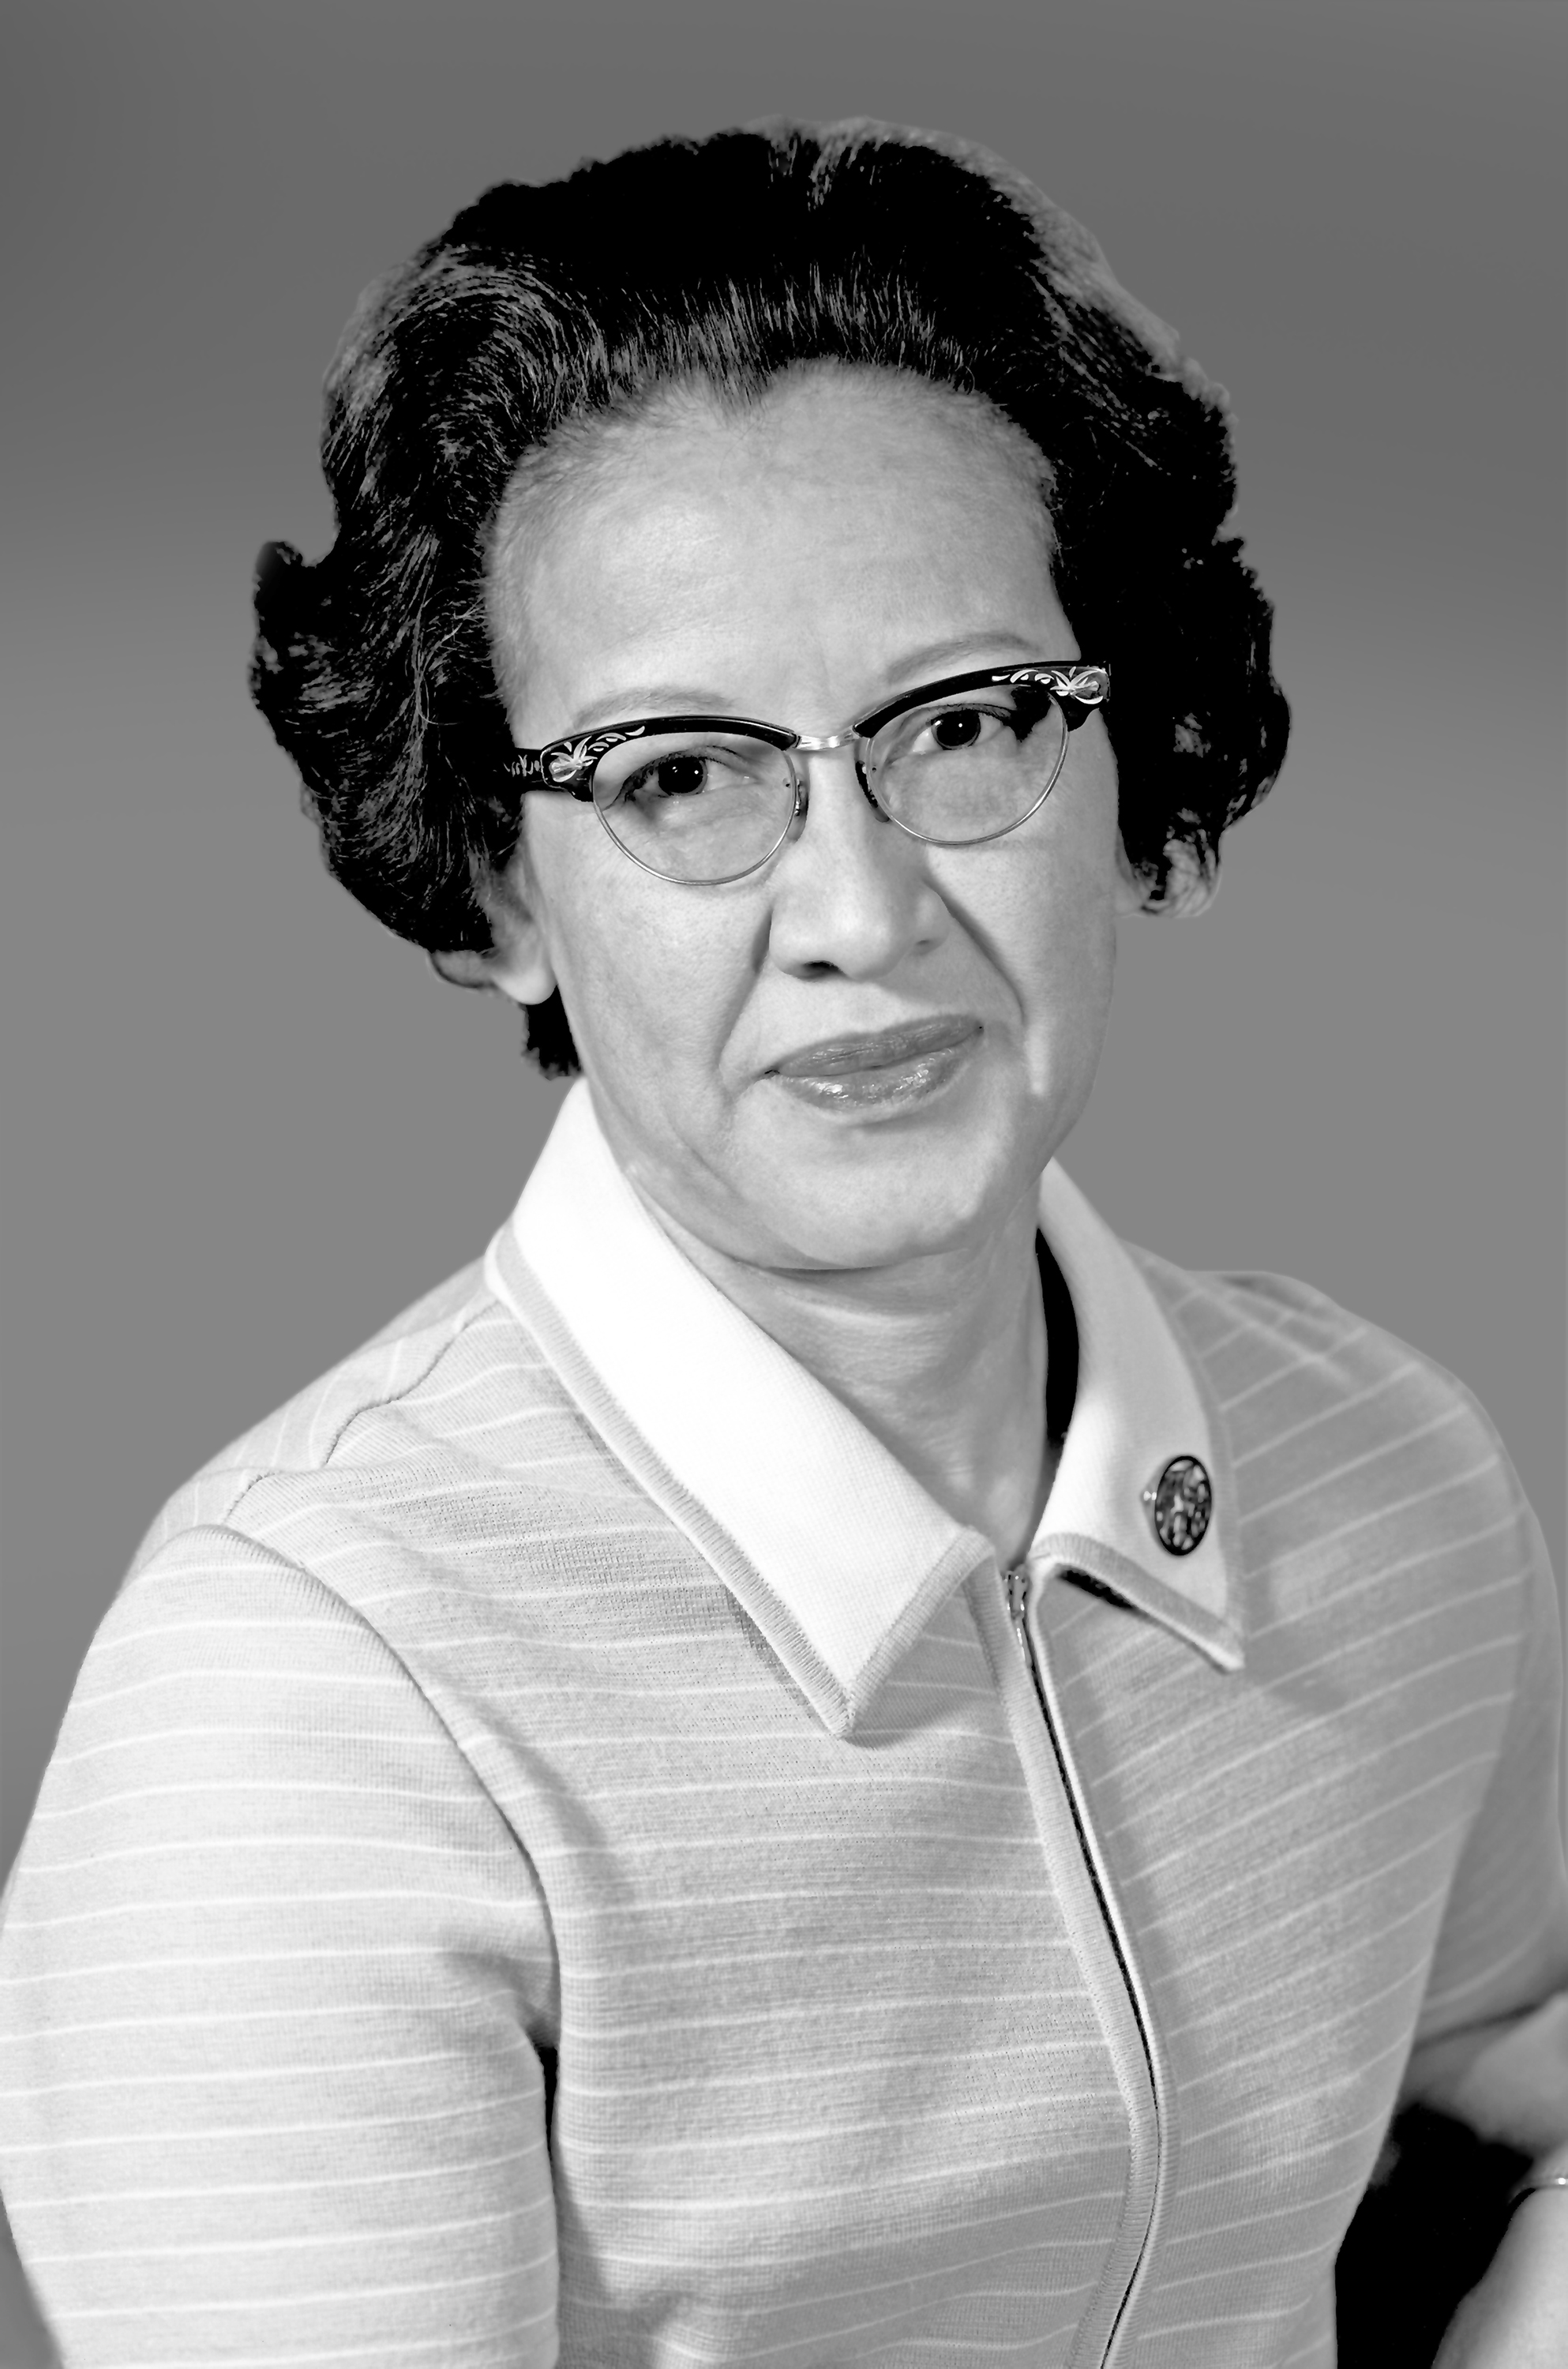 Katherine Johnson while working for NASA. Credit: NASA